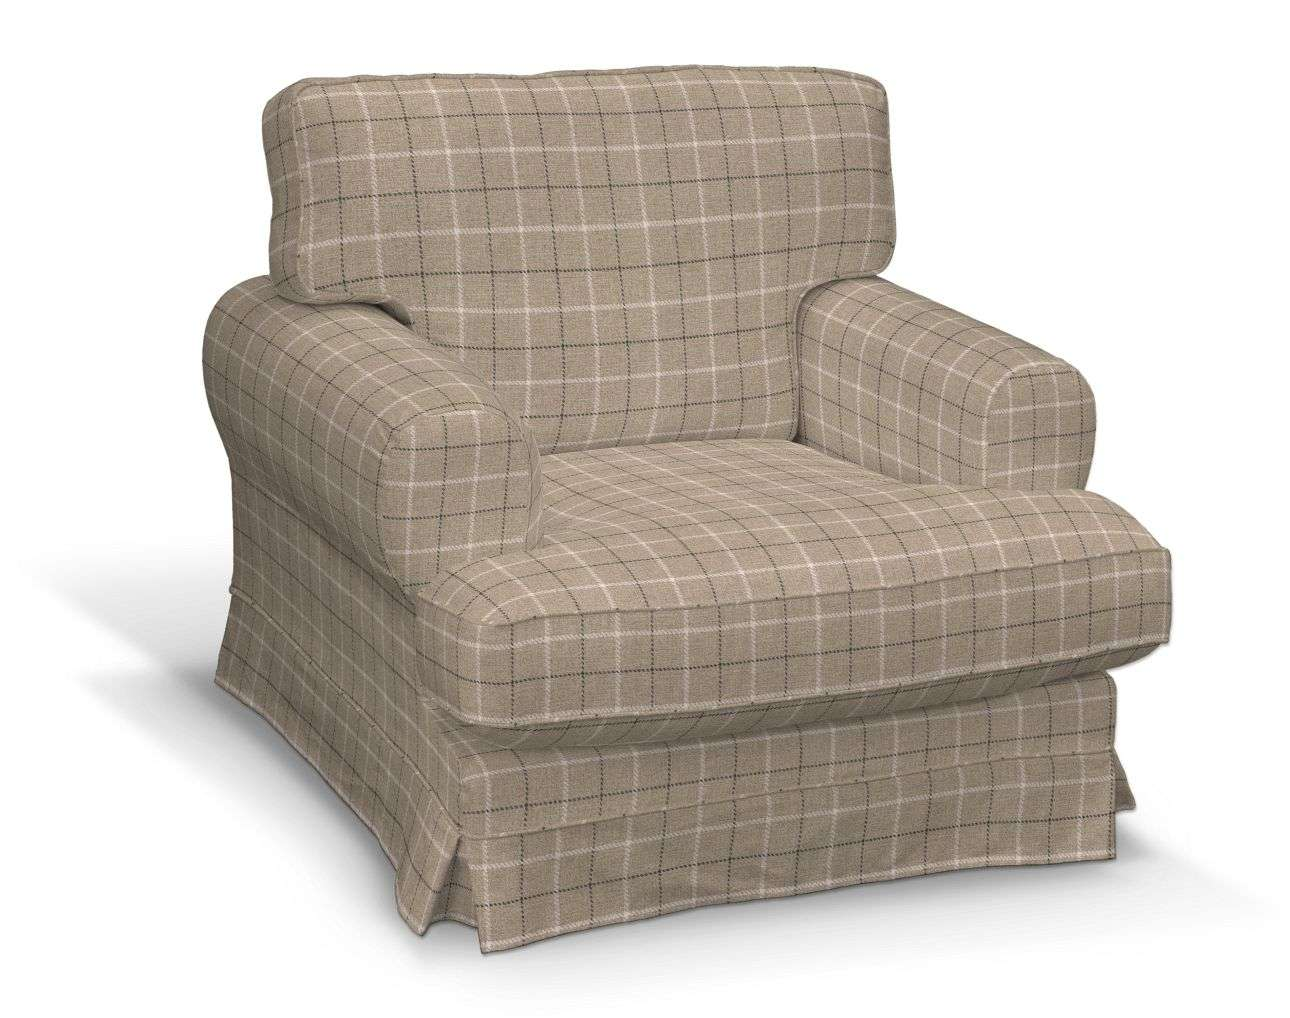 Ekeskog armchair cover